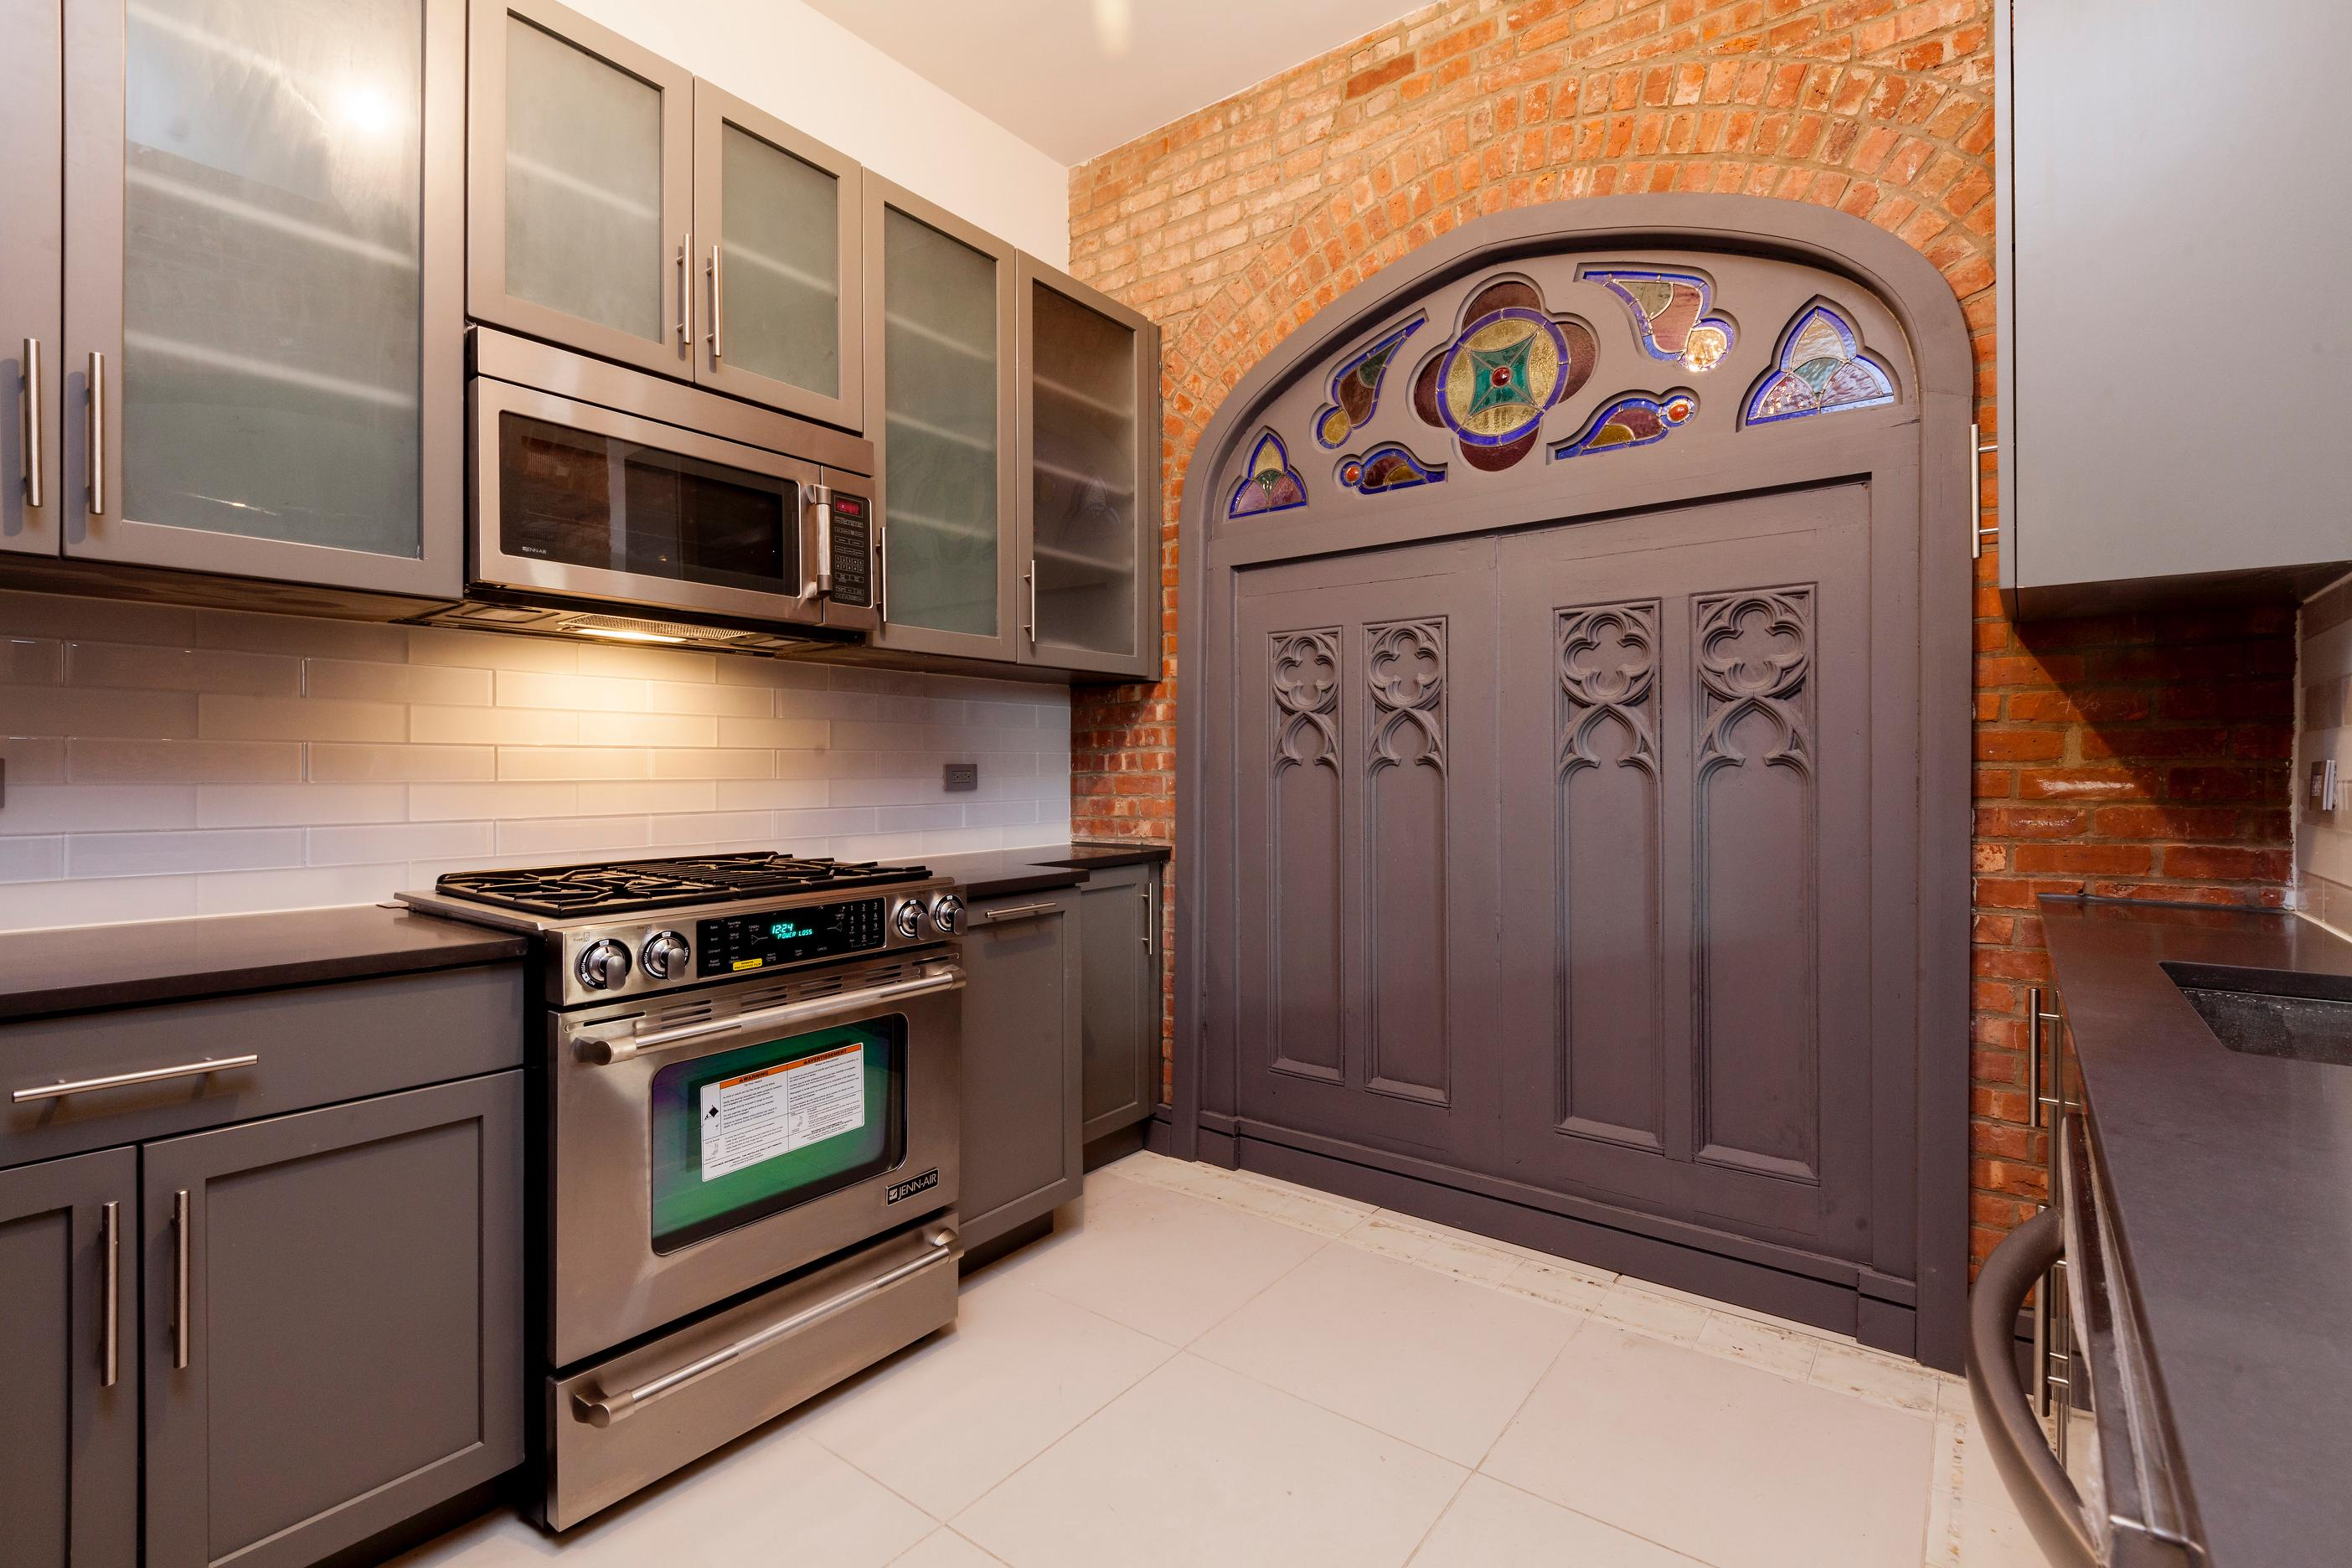 232 Adelphi Street, carlton mews church, kitchen, rentals